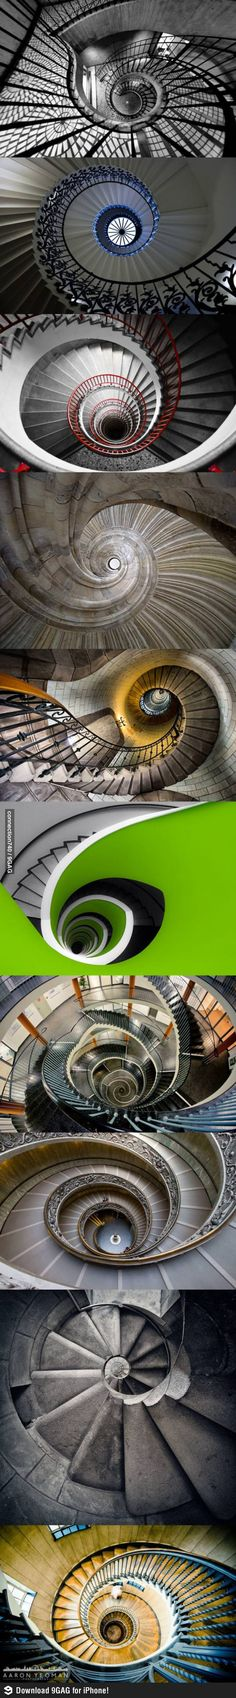 K staircase n doorway Super House Ideas Stairs Spiral Staircases Ideas Introduction to bonsai t Beautiful Stairs, Beautiful Buildings, Art And Architecture, Architecture Details, Spiral Stairs Design, Stairs To Heaven, Stair Art, Stair Lighting, Take The Stairs